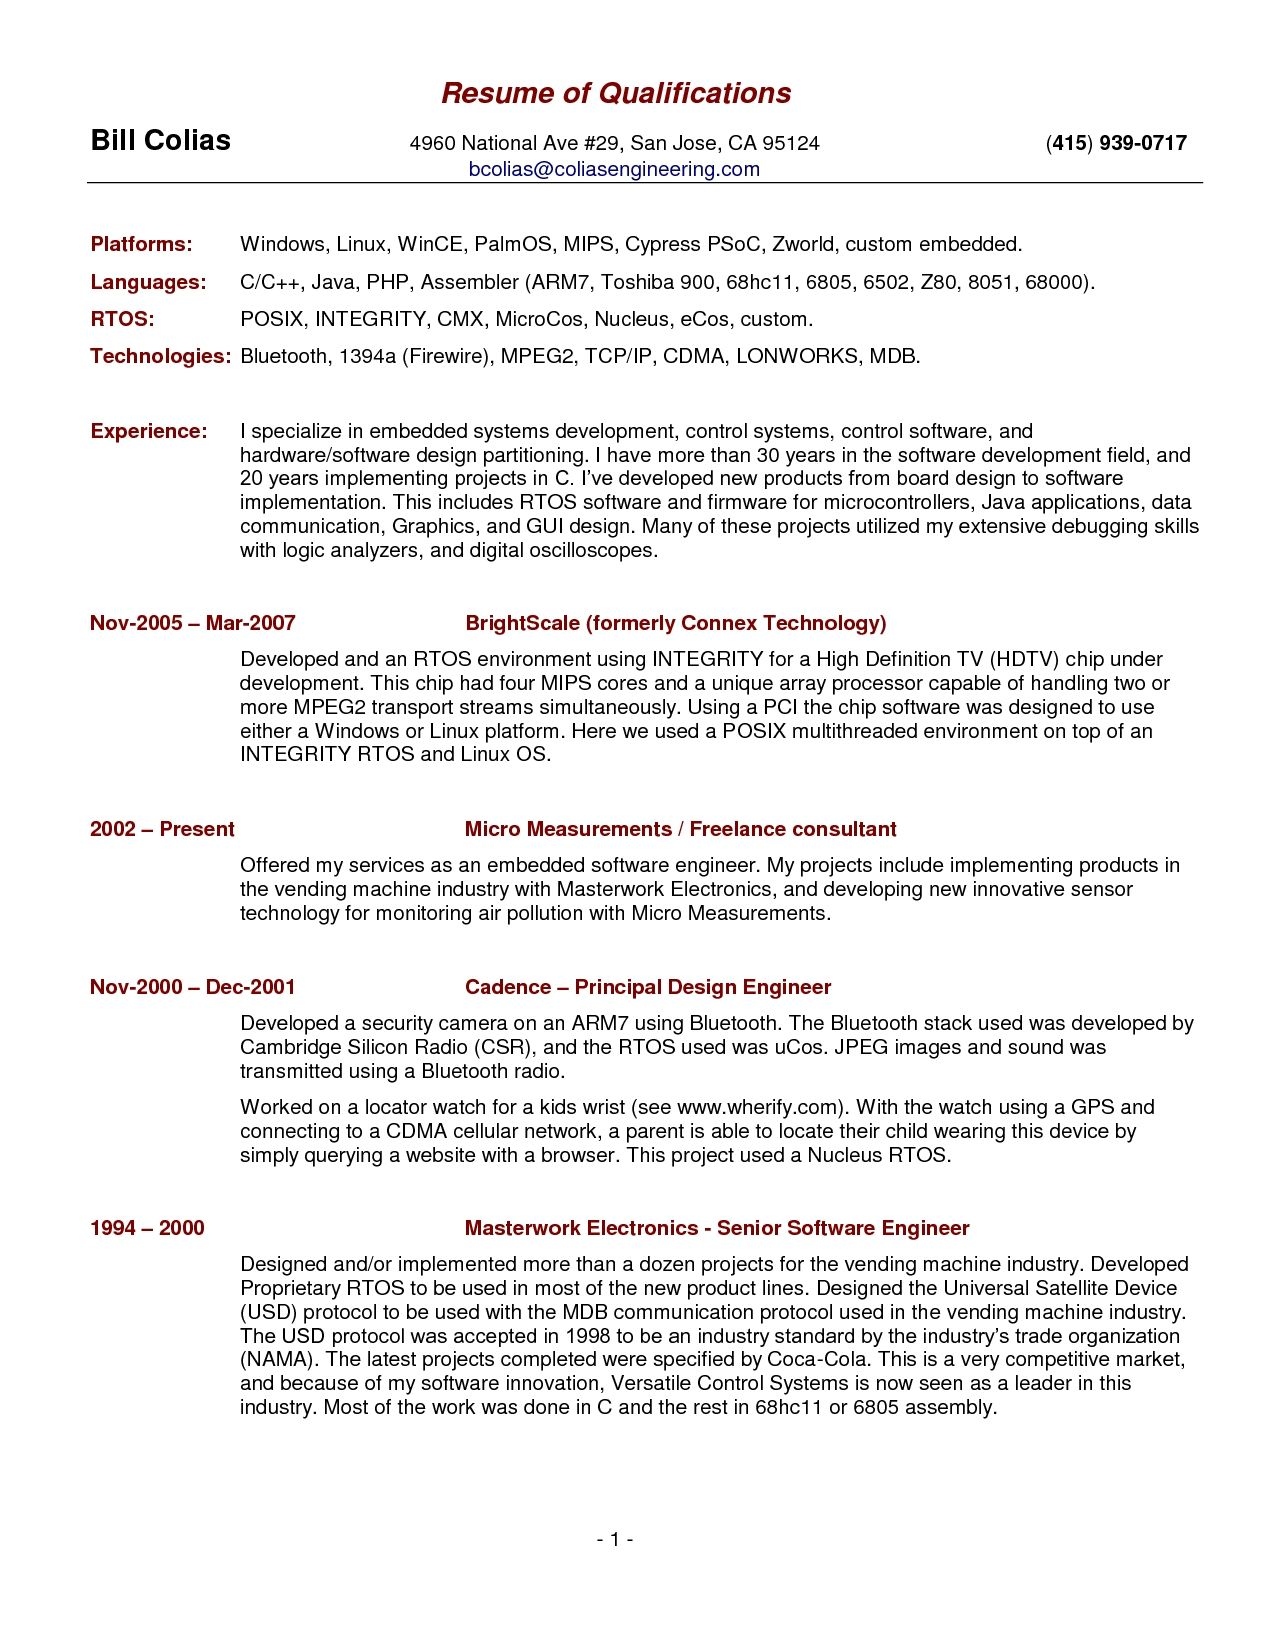 Skill Resume Template Gorgeous Qualifications For A Resume Examples 7F8Ea3A2A New Resume Skills